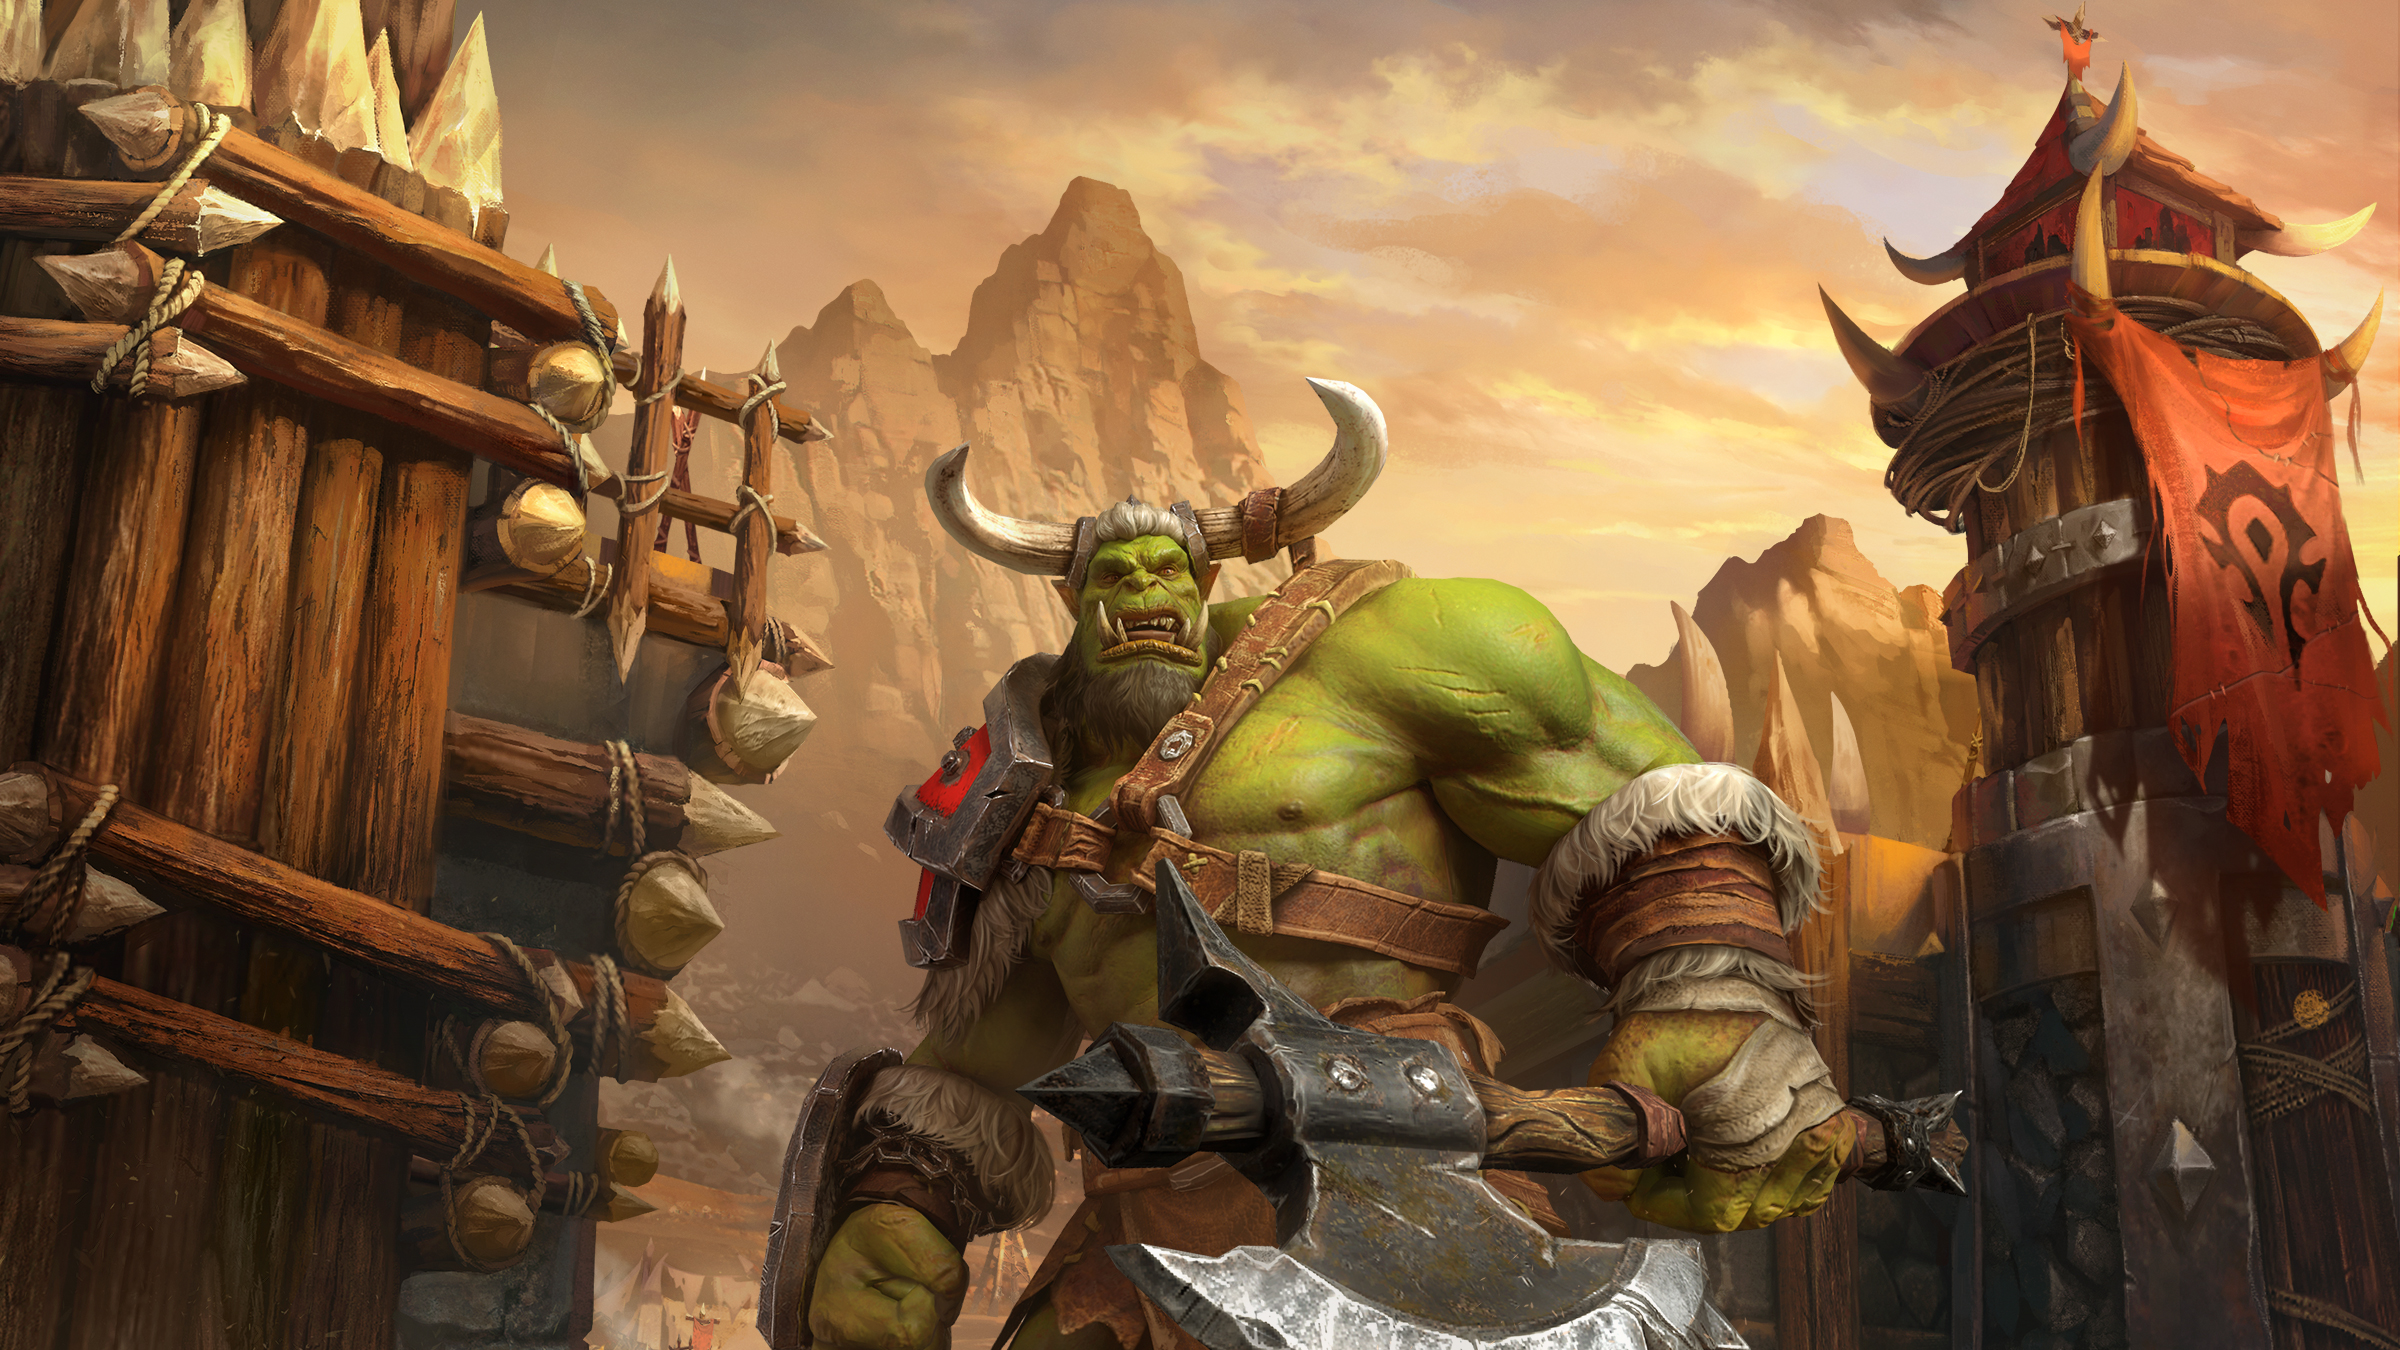 Play Warcraft III: Reforged and Relive the Beginnings of World of Warcraft—Now Live!